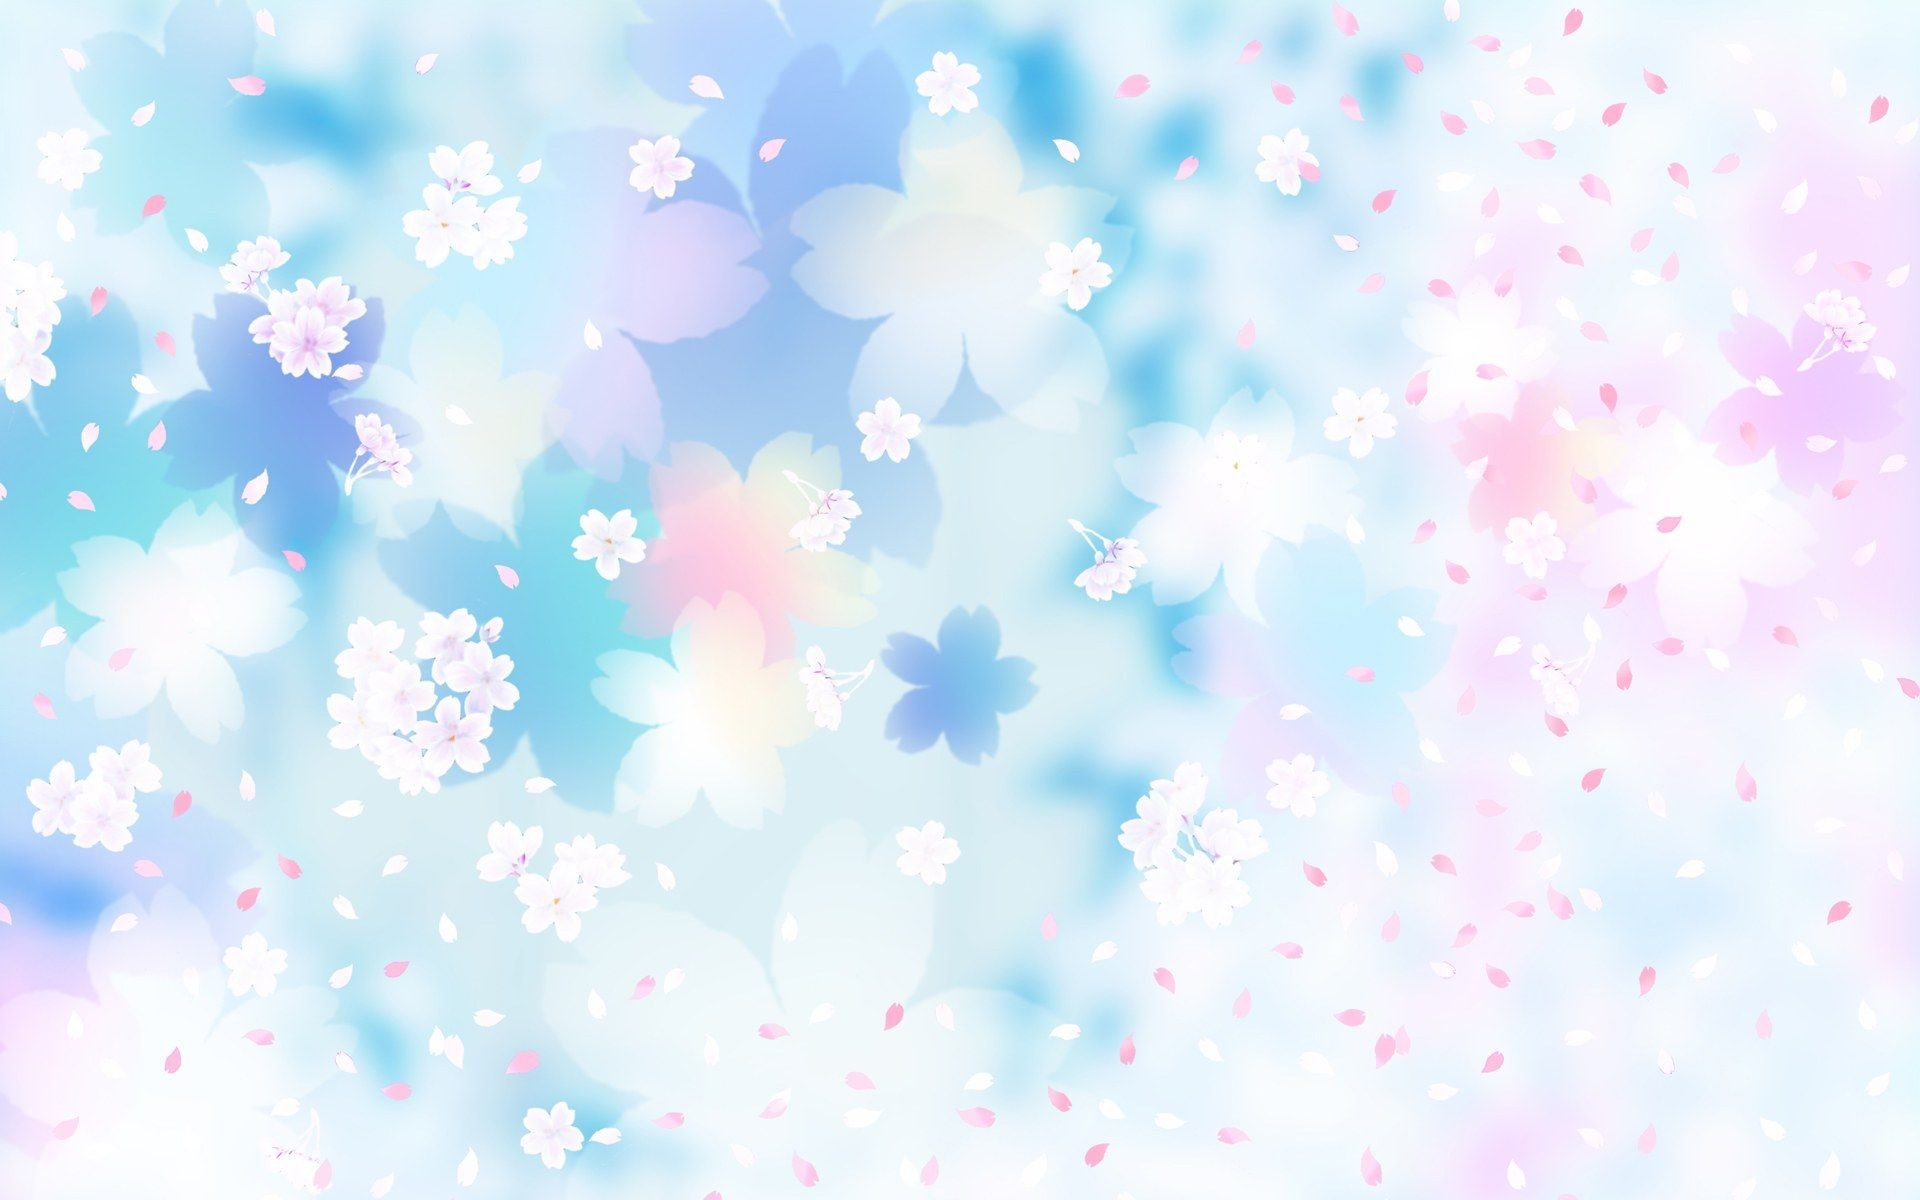 1920x1200 Flower Pattern Background, Blue and Pink Flowers, Flying Petals .